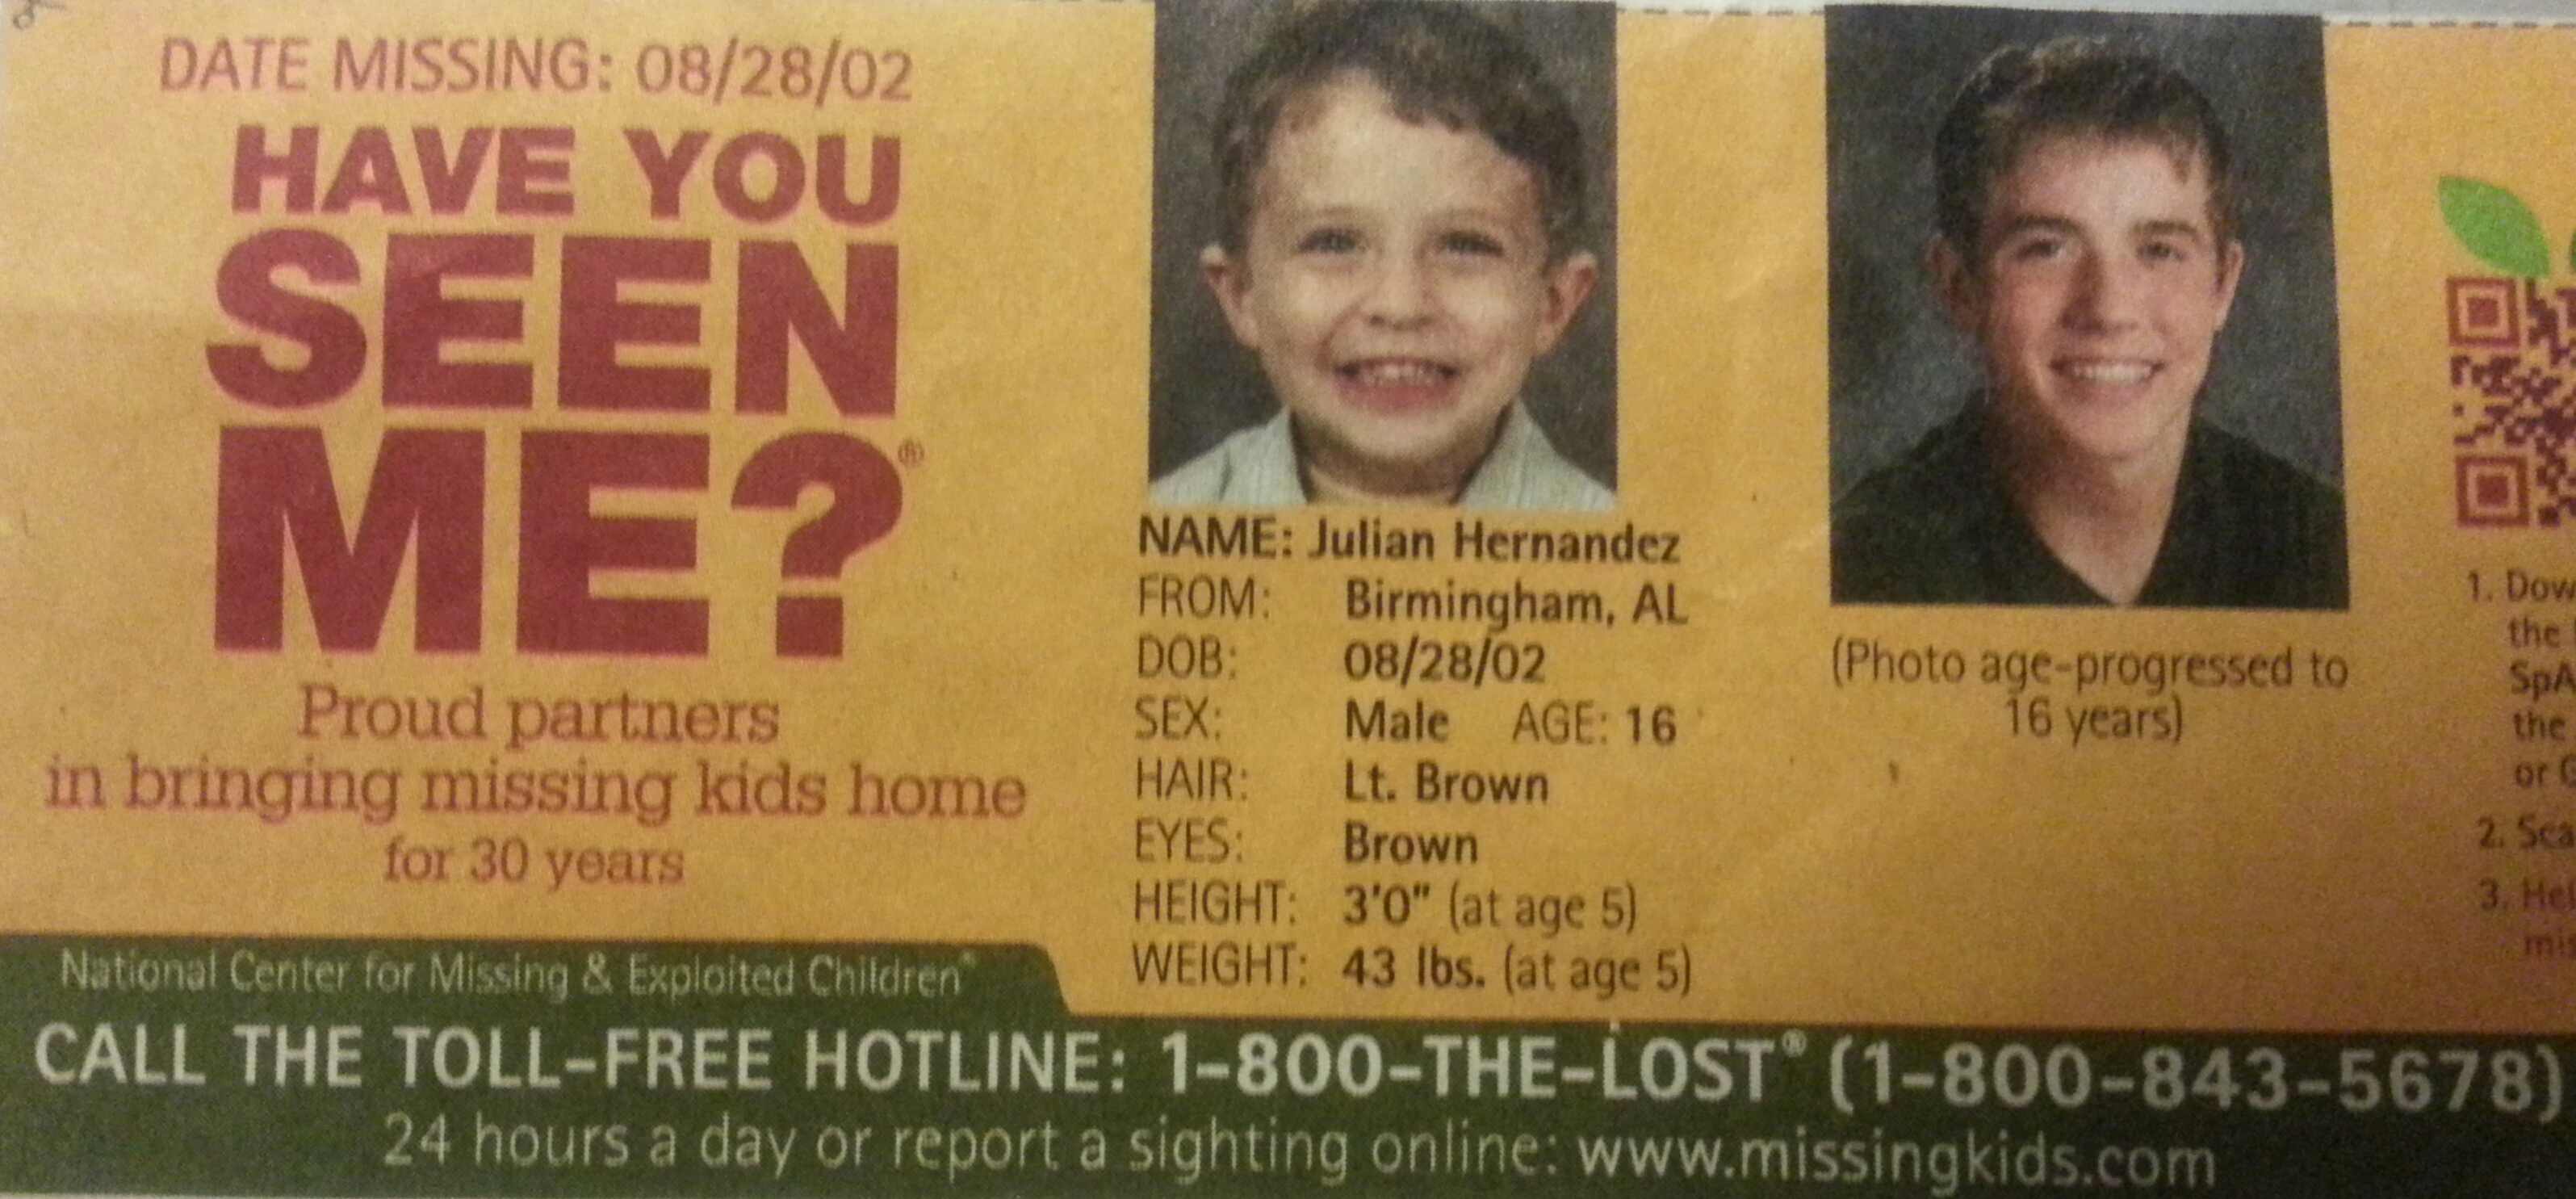 Ohio College Application Leads Feds to Alabama Boy Abducted in 2002 (see poster)